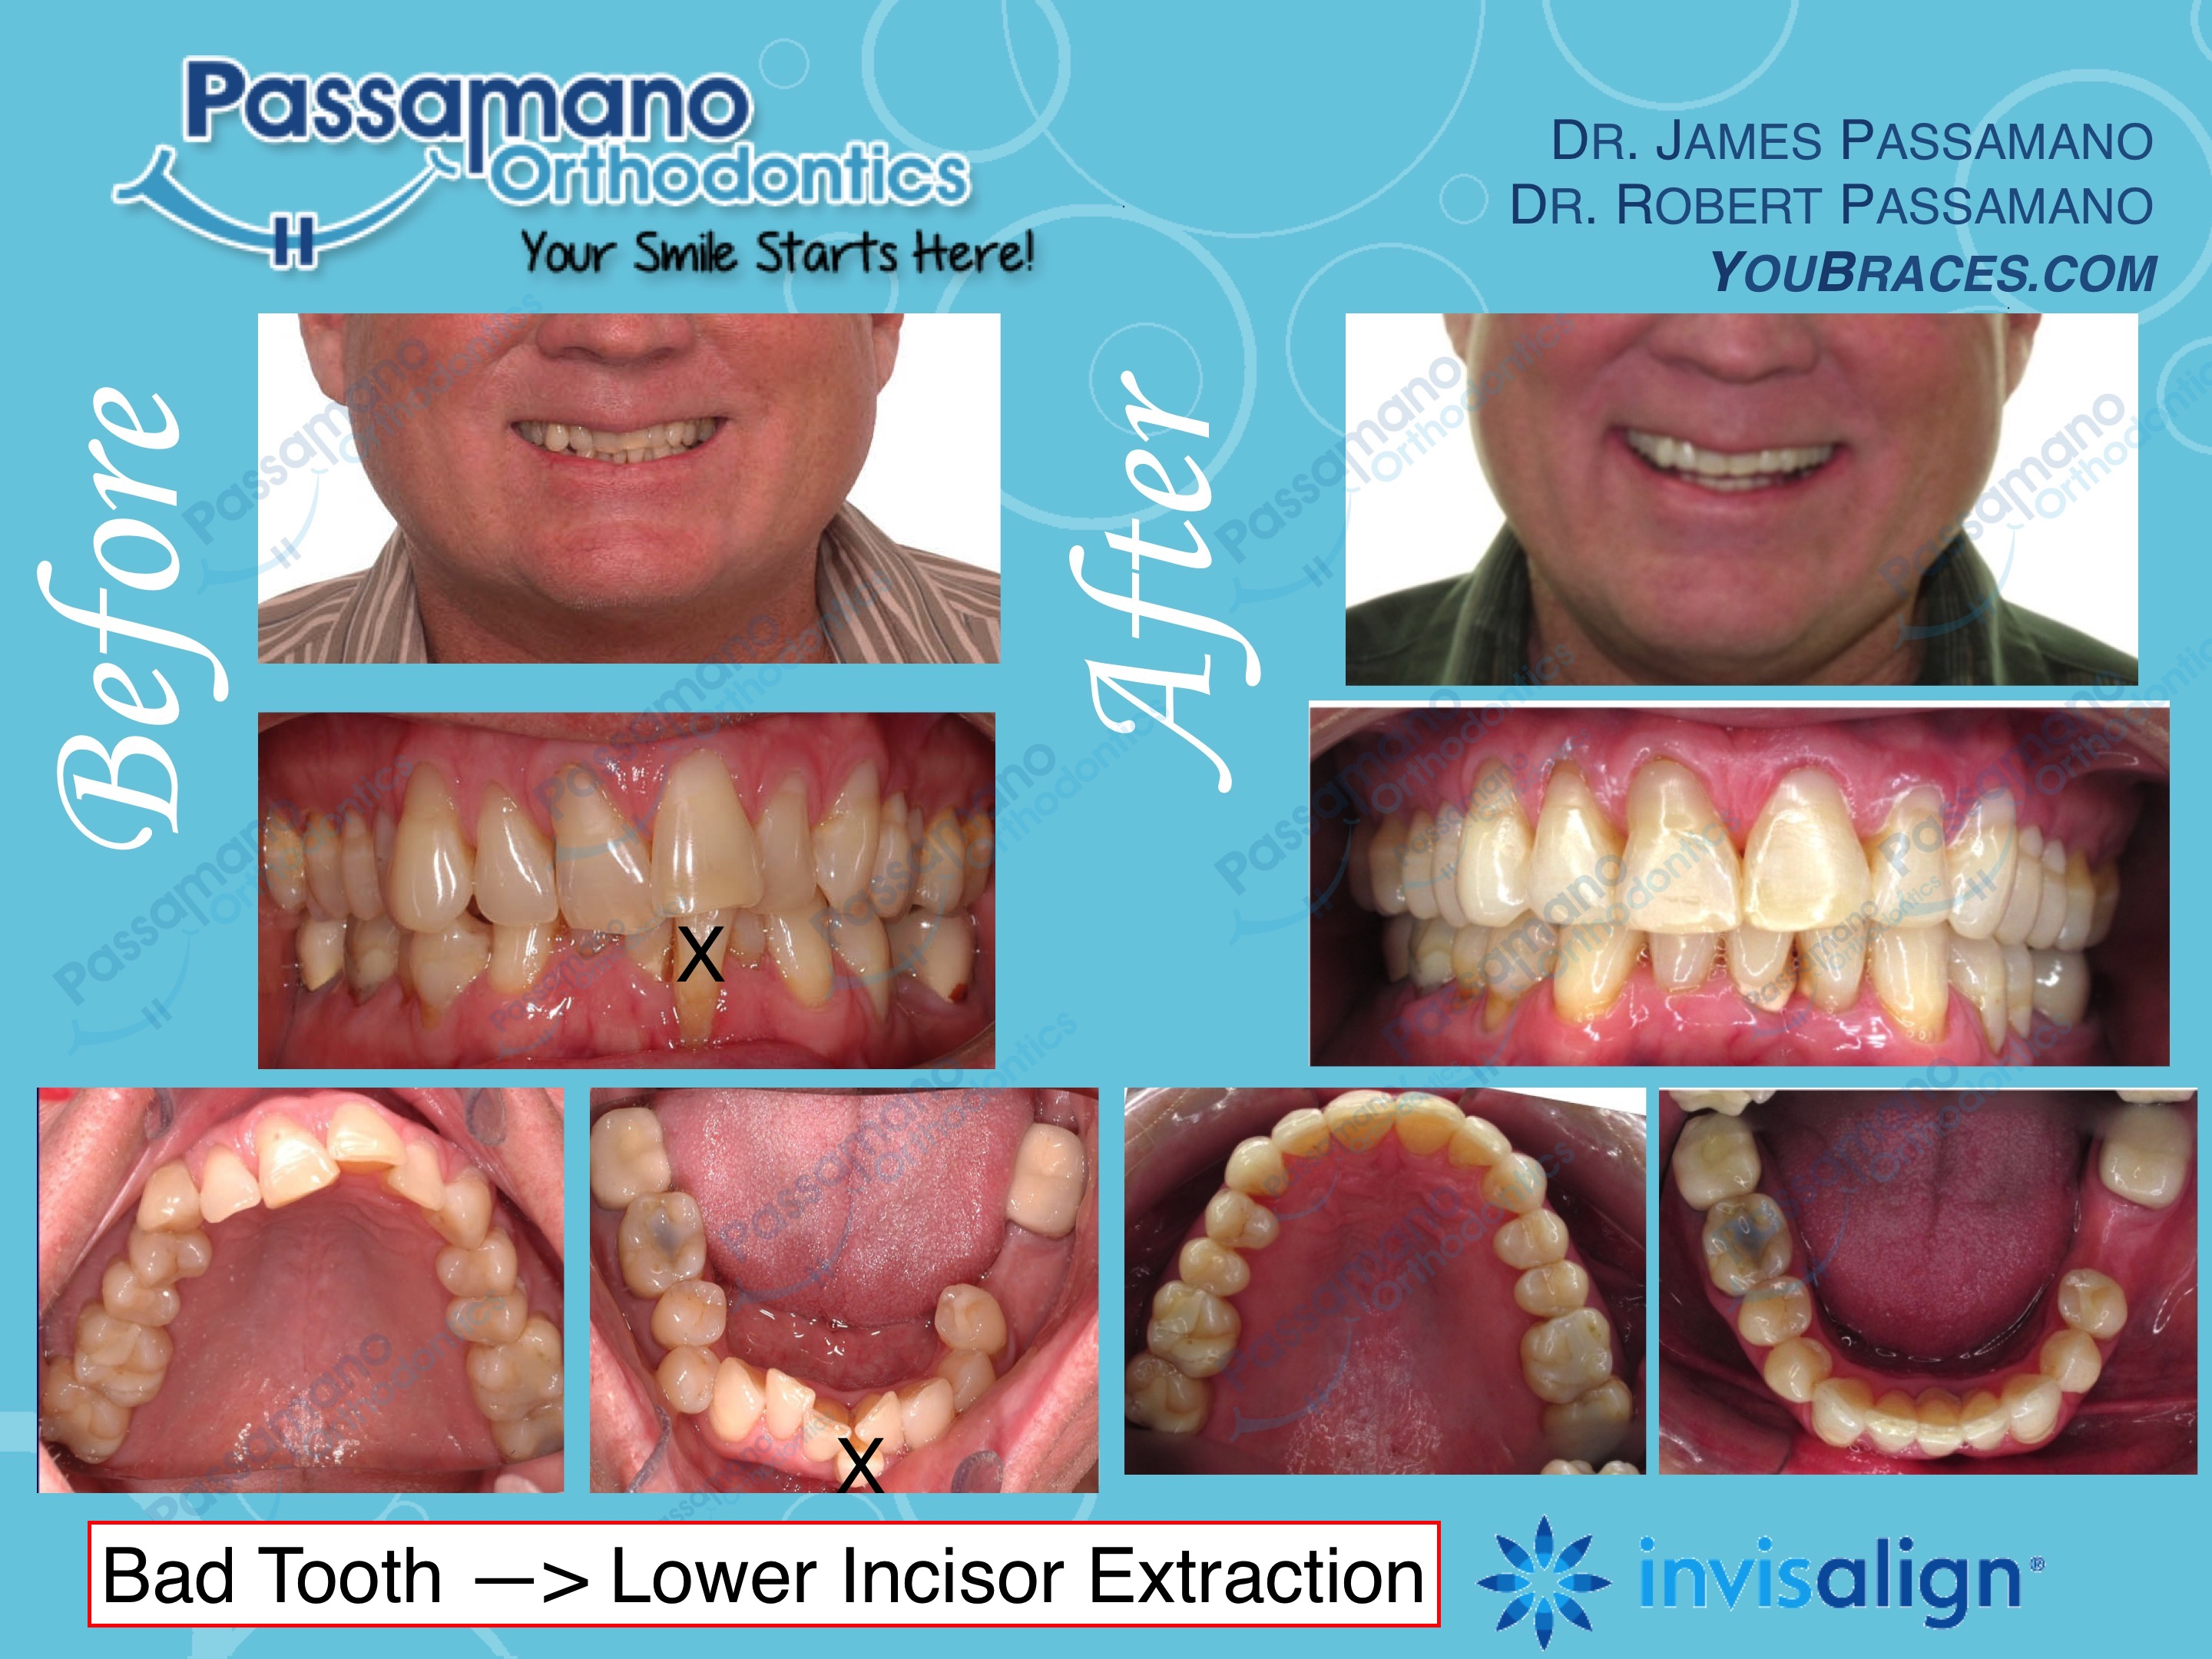 Lower Incisor Tooth Extraction with Invisalign Only